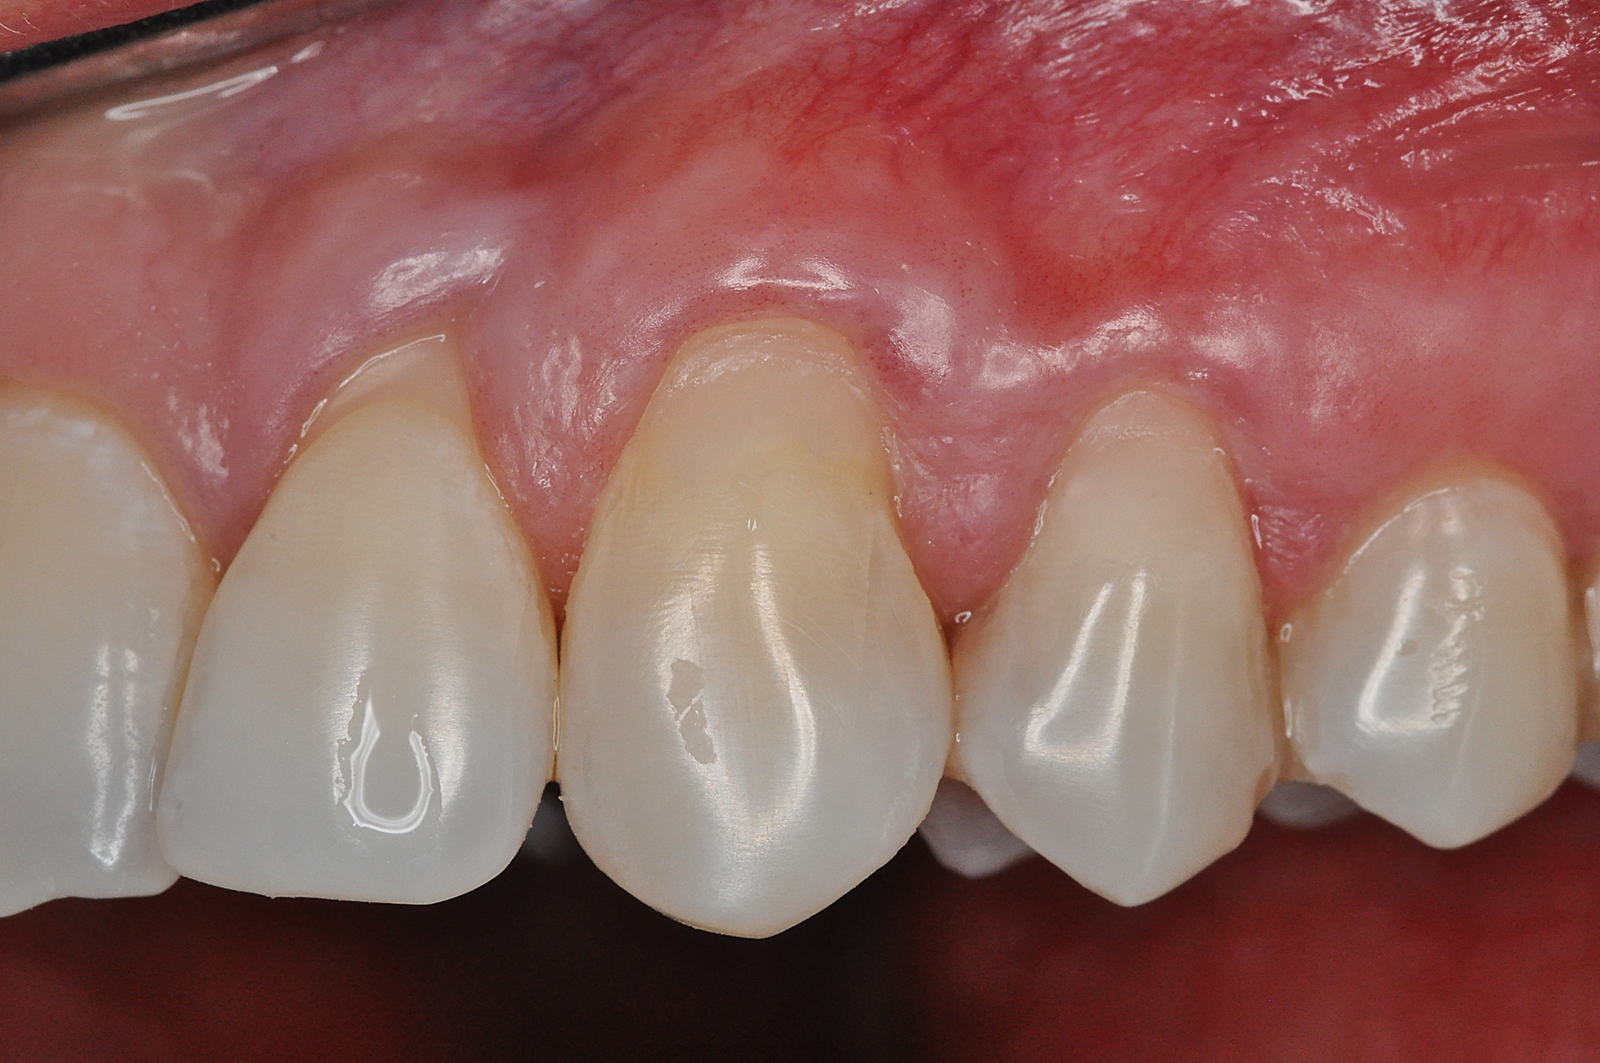 Treatment of two adjacent infrabony defects with Straumann® Emdogain®